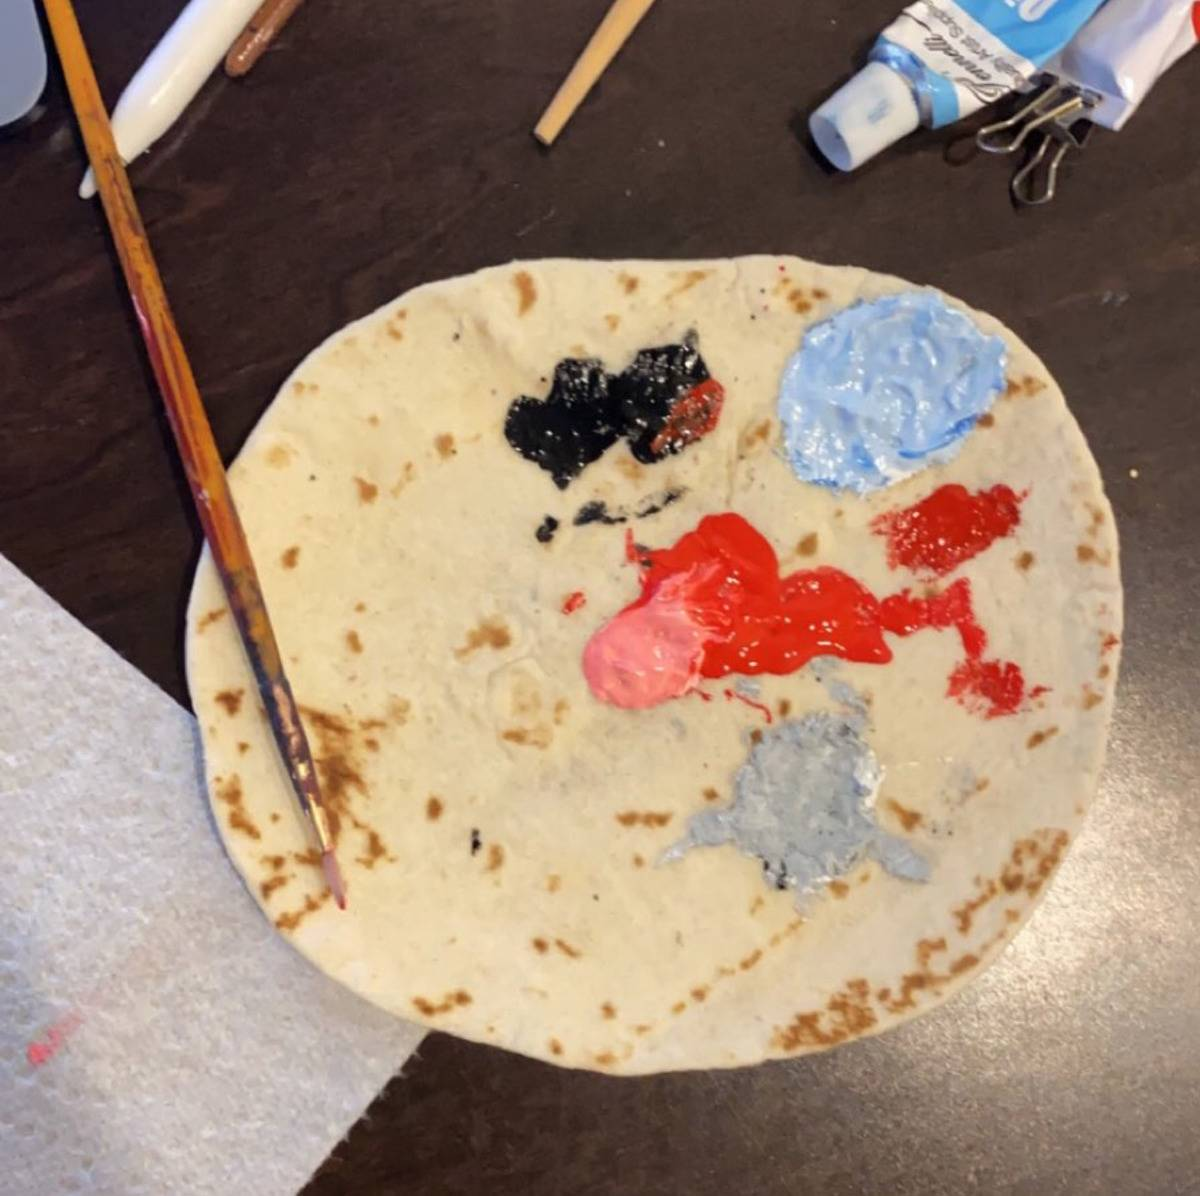 someone using a tortilla to put their paint on